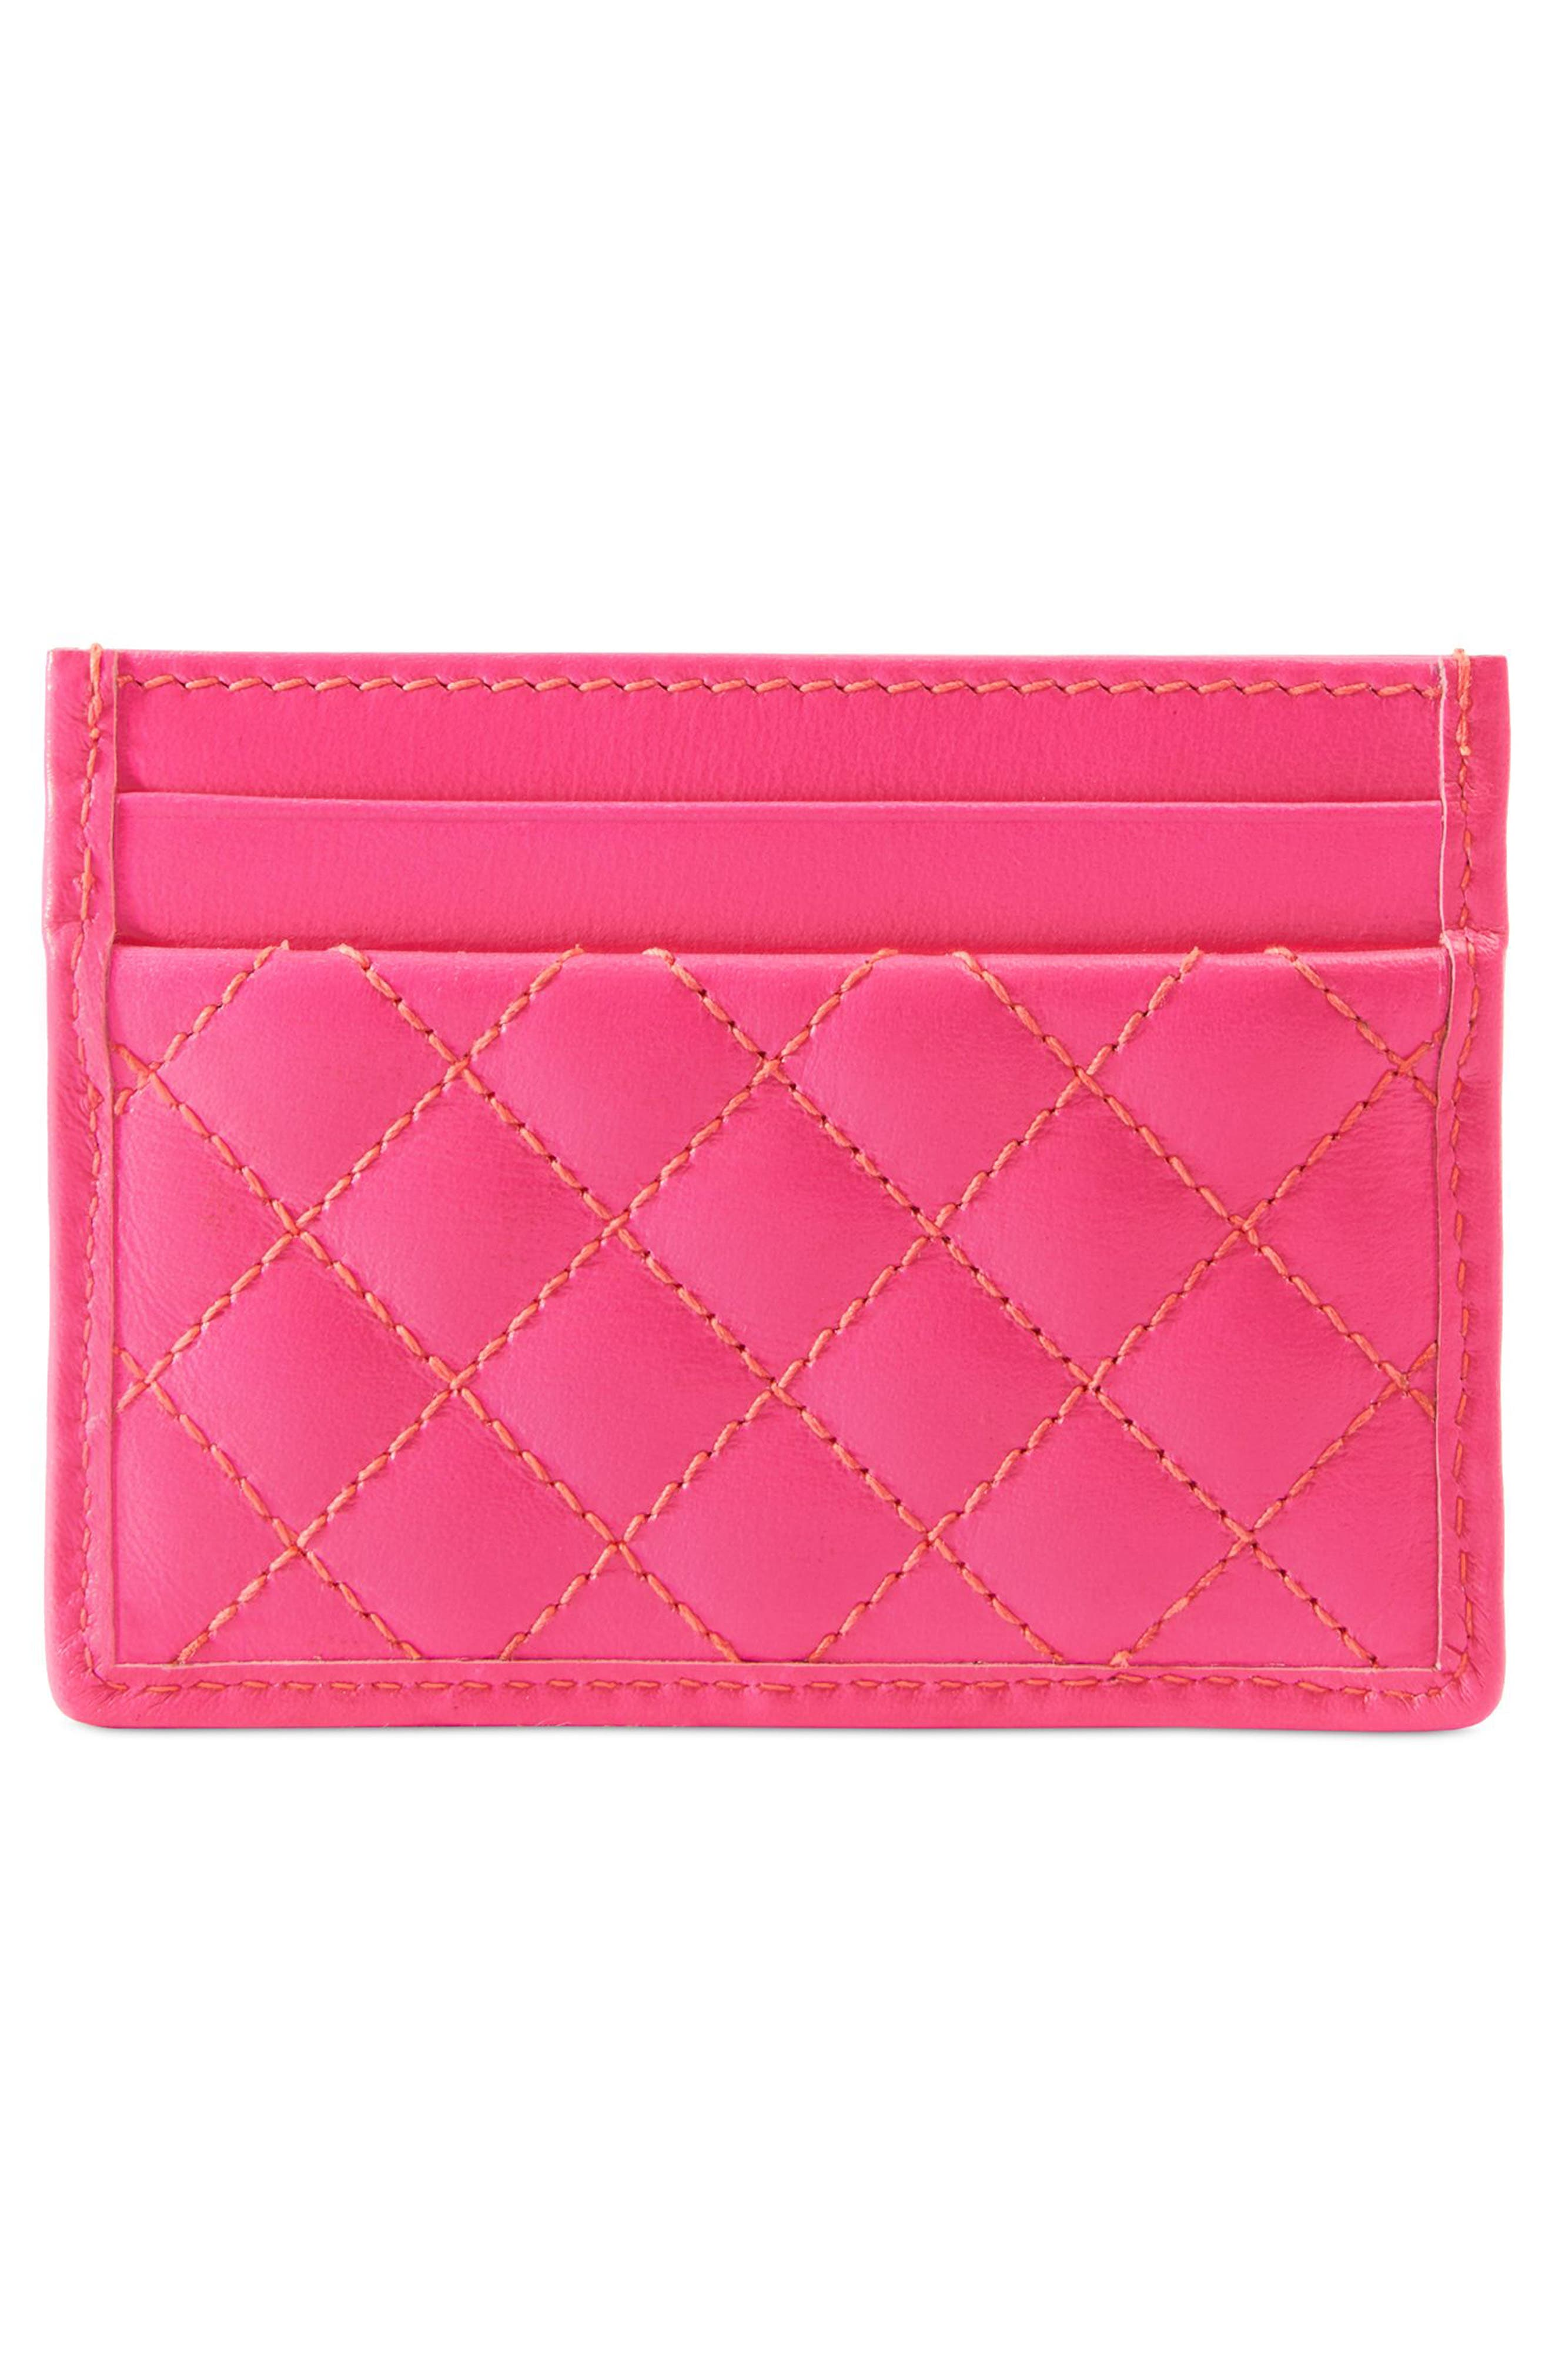 Quilted Leather Card Case,                             Alternate thumbnail 3, color,                             670